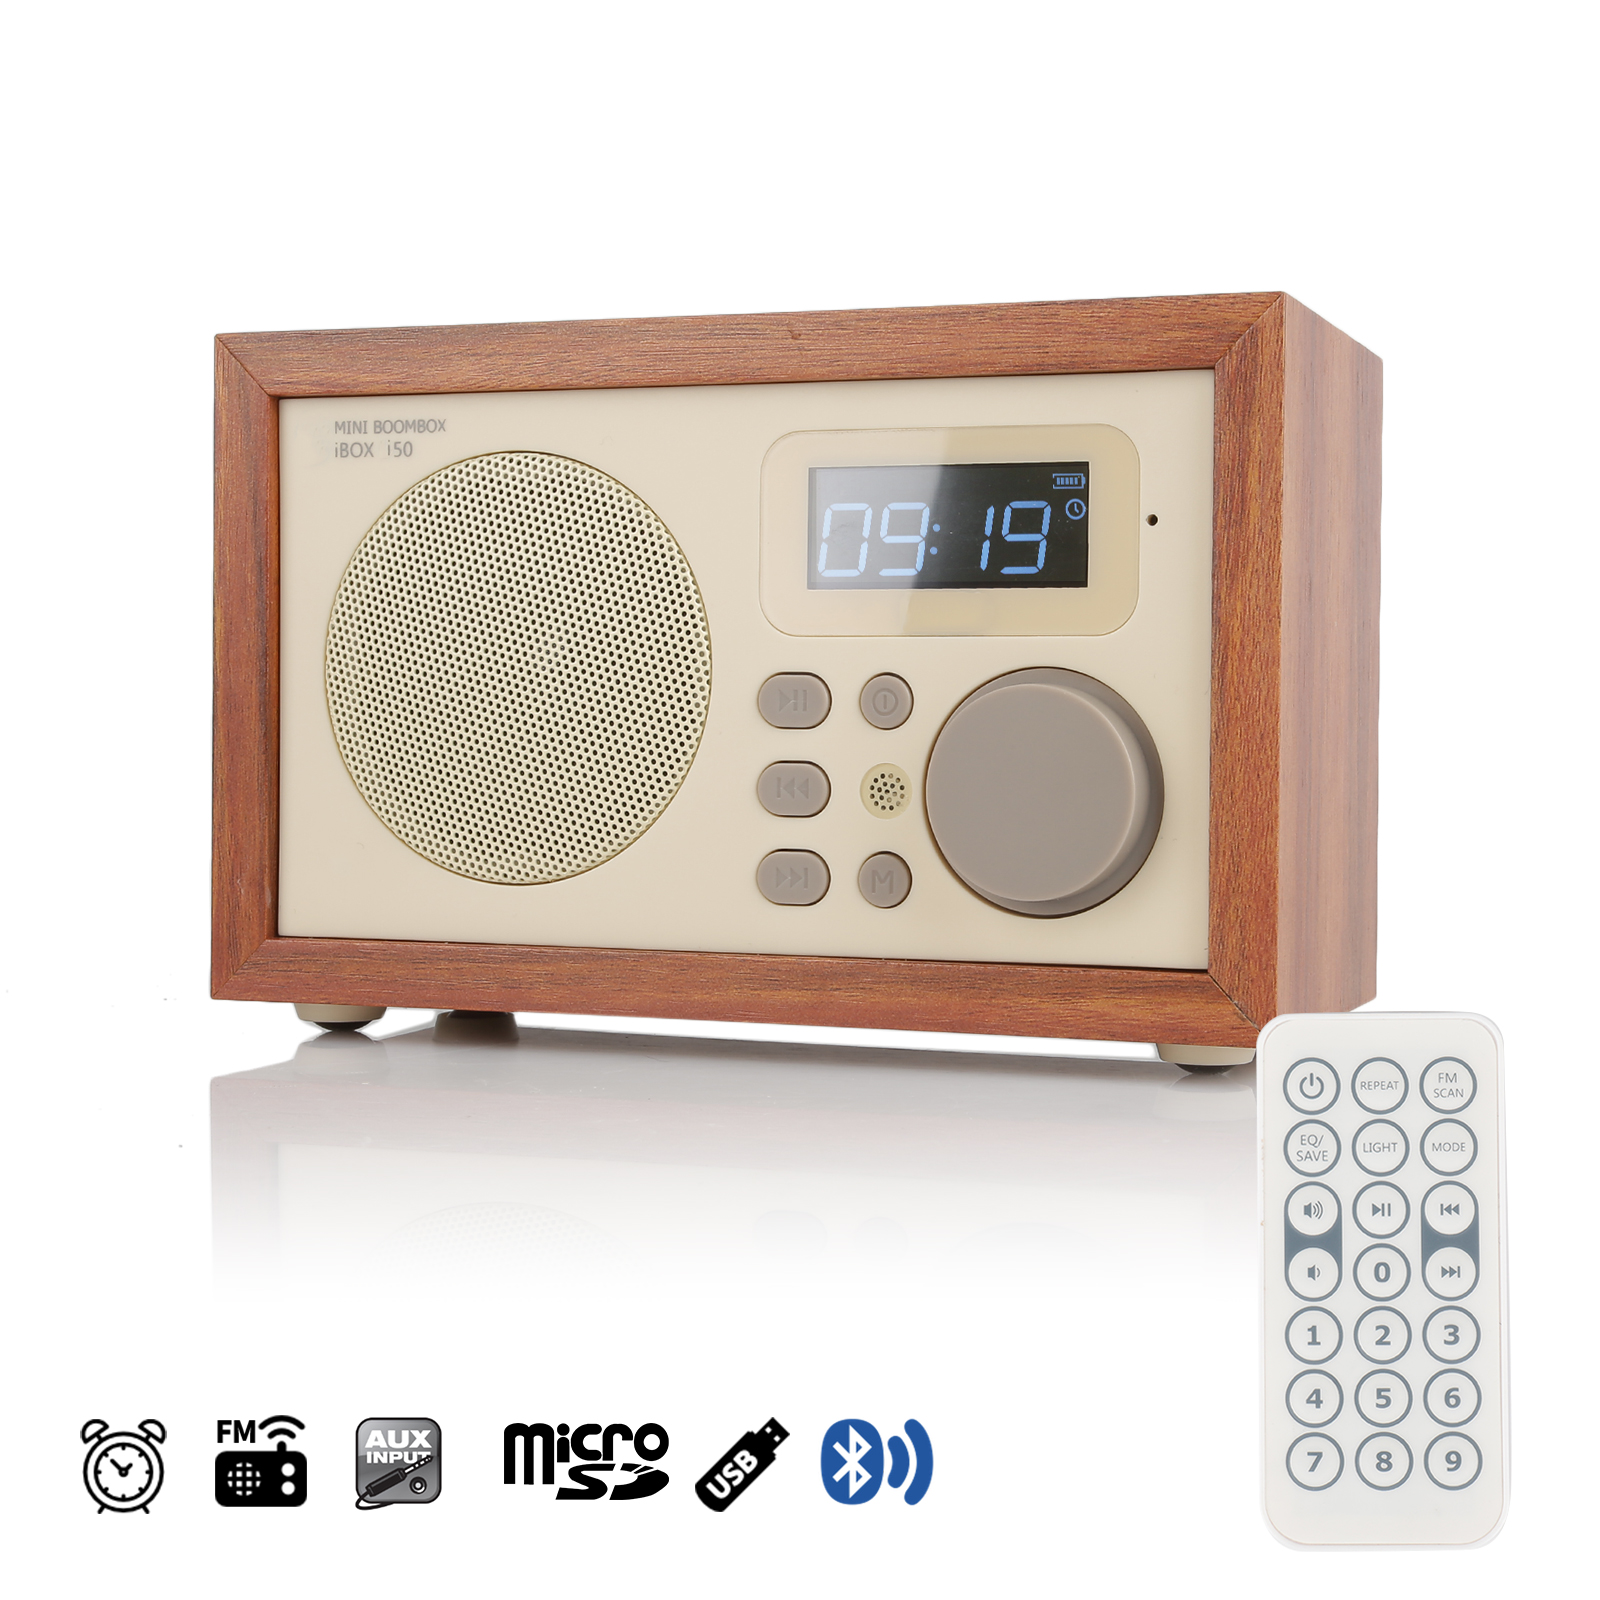 Instabox I50 Retro Wooden Bluetooth Remote Control Alarm Clock Usb Small Fm Radio Mp3